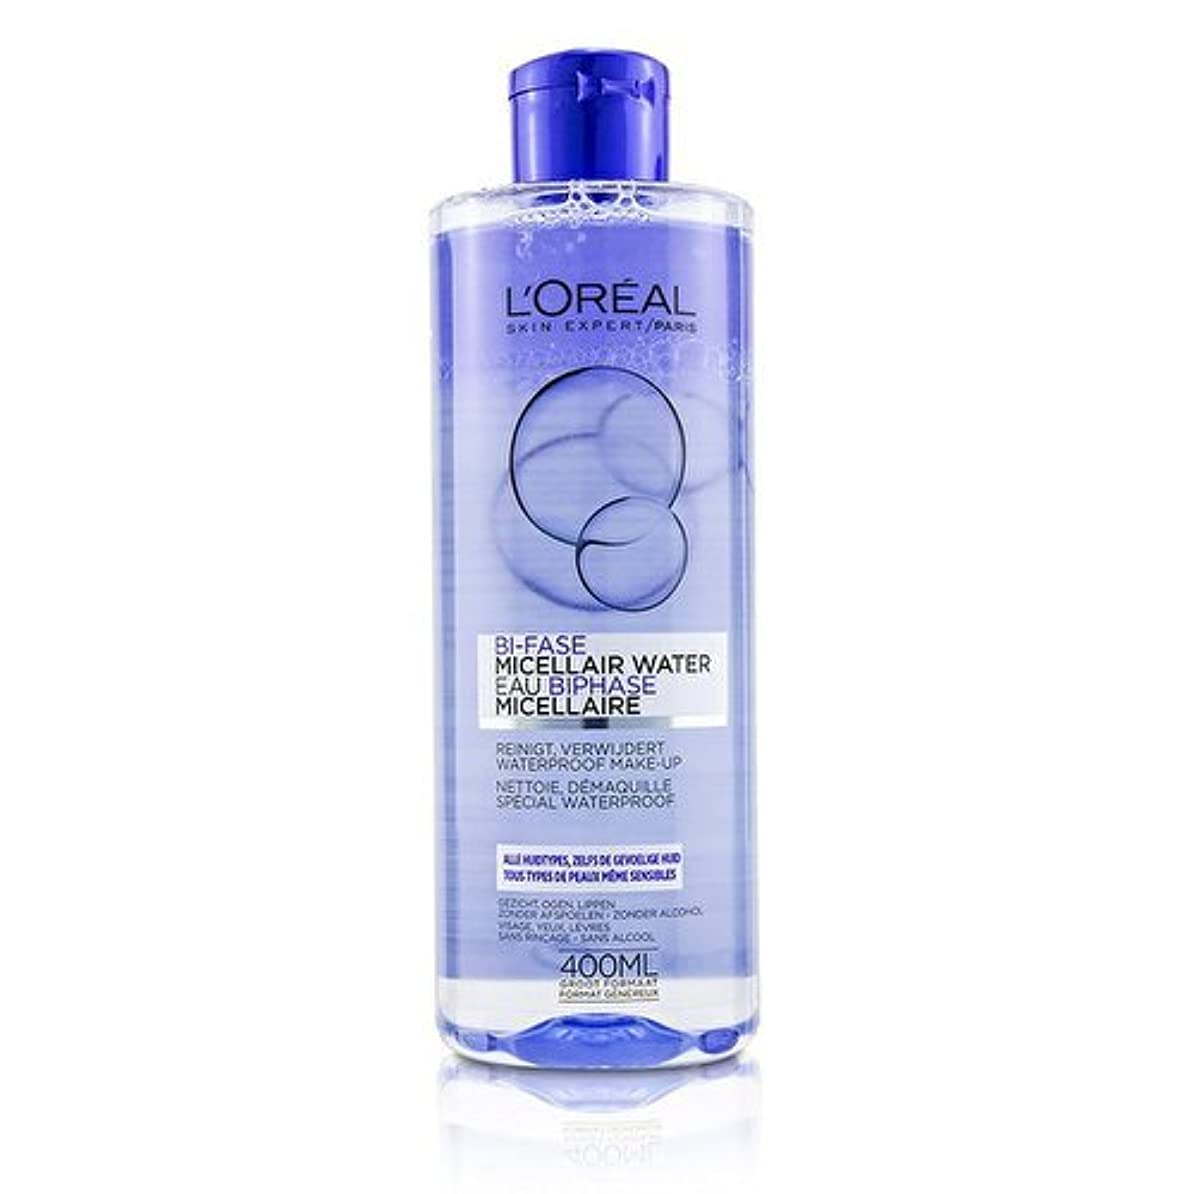 ペルセウスびっくり大いにロレアル Bi-Phase Micellar Water (Bi-Fase Micellair Water) - For All Skin Types, even Sensitive Skin 400ml/13.3oz並行輸入品